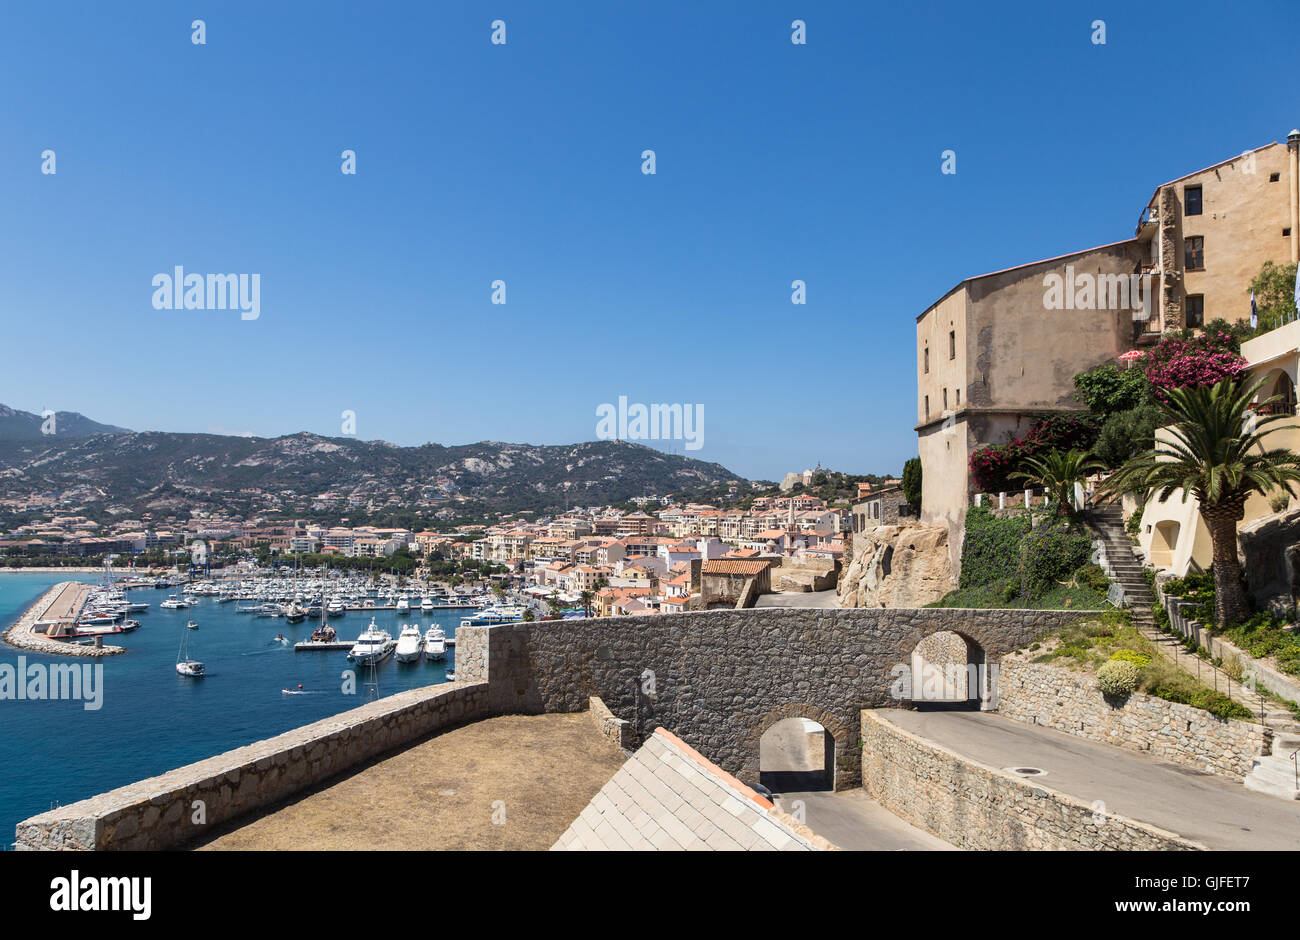 Calvi citadel overlooking the marina in the French island of Corsica. - Stock Image